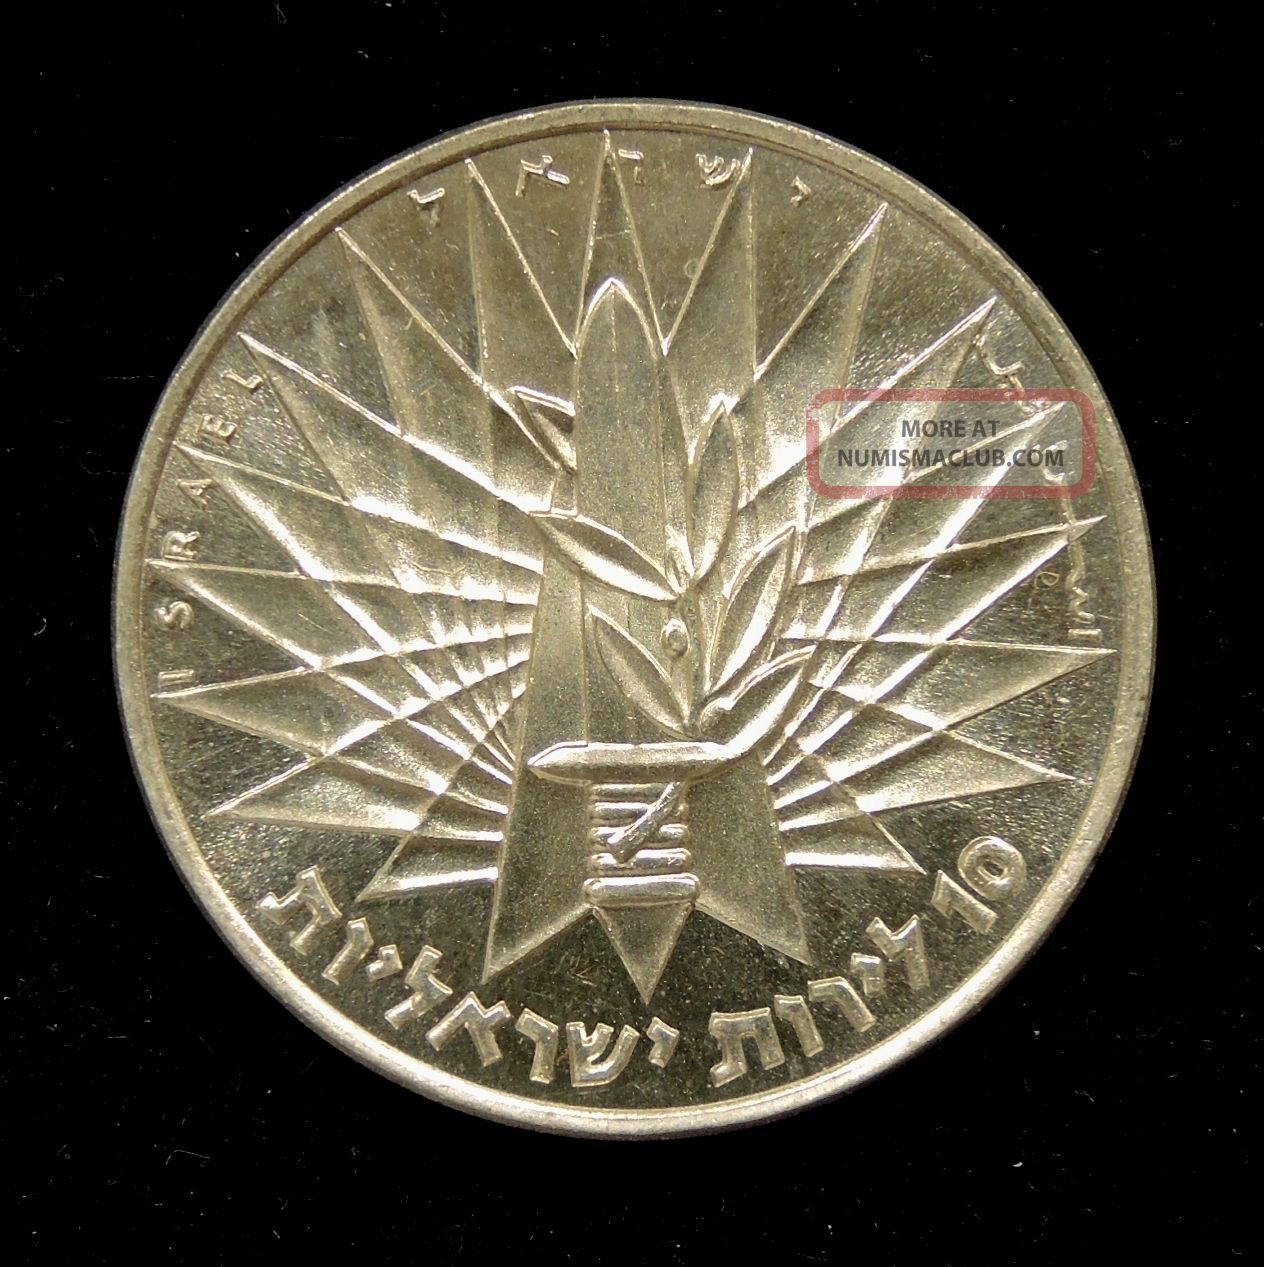 israel victory coin 1967